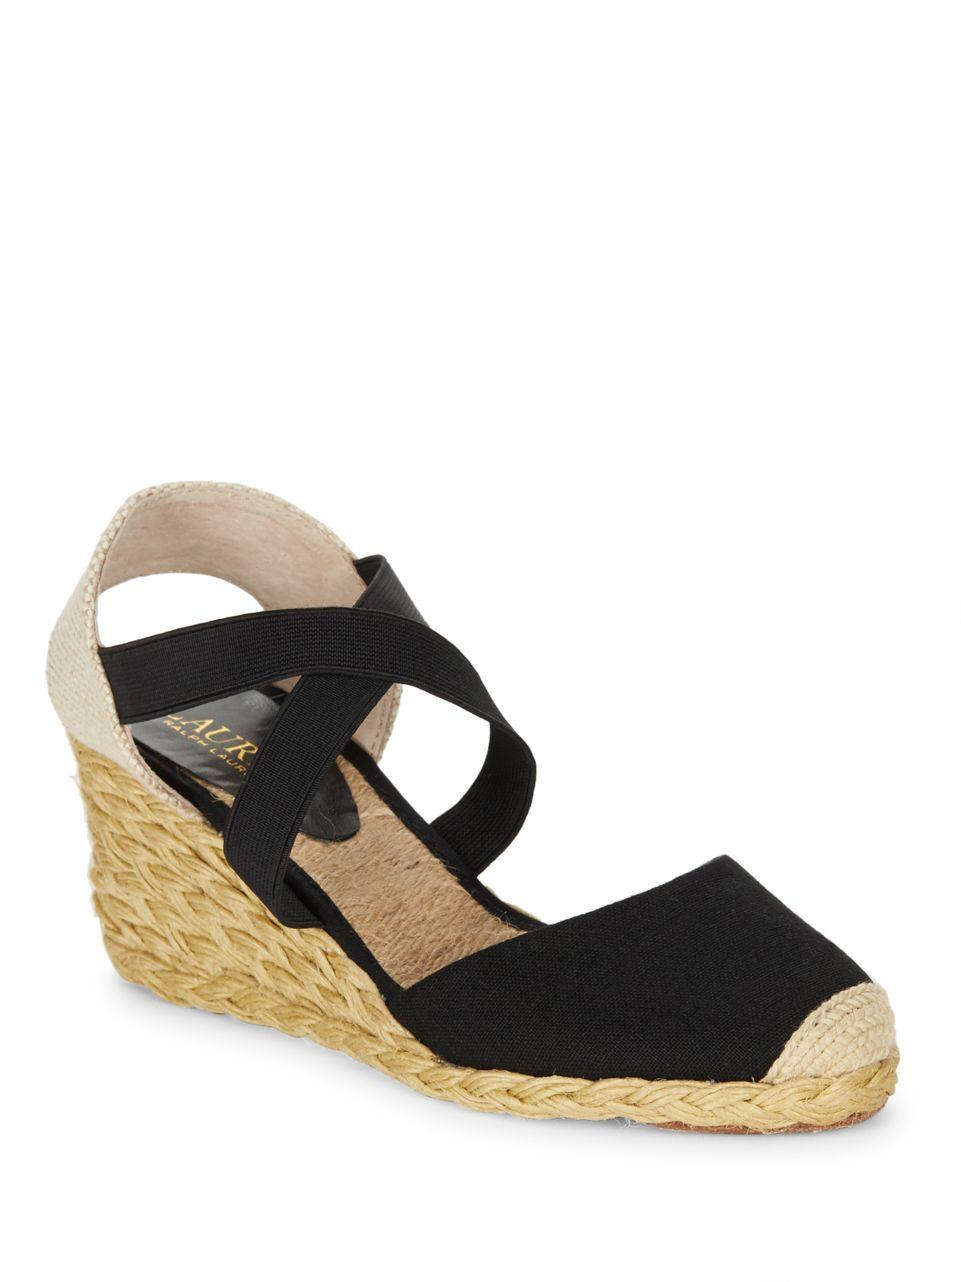 lauren by ralph lauren casandra espadrille wedge sandals in black lyst. Black Bedroom Furniture Sets. Home Design Ideas